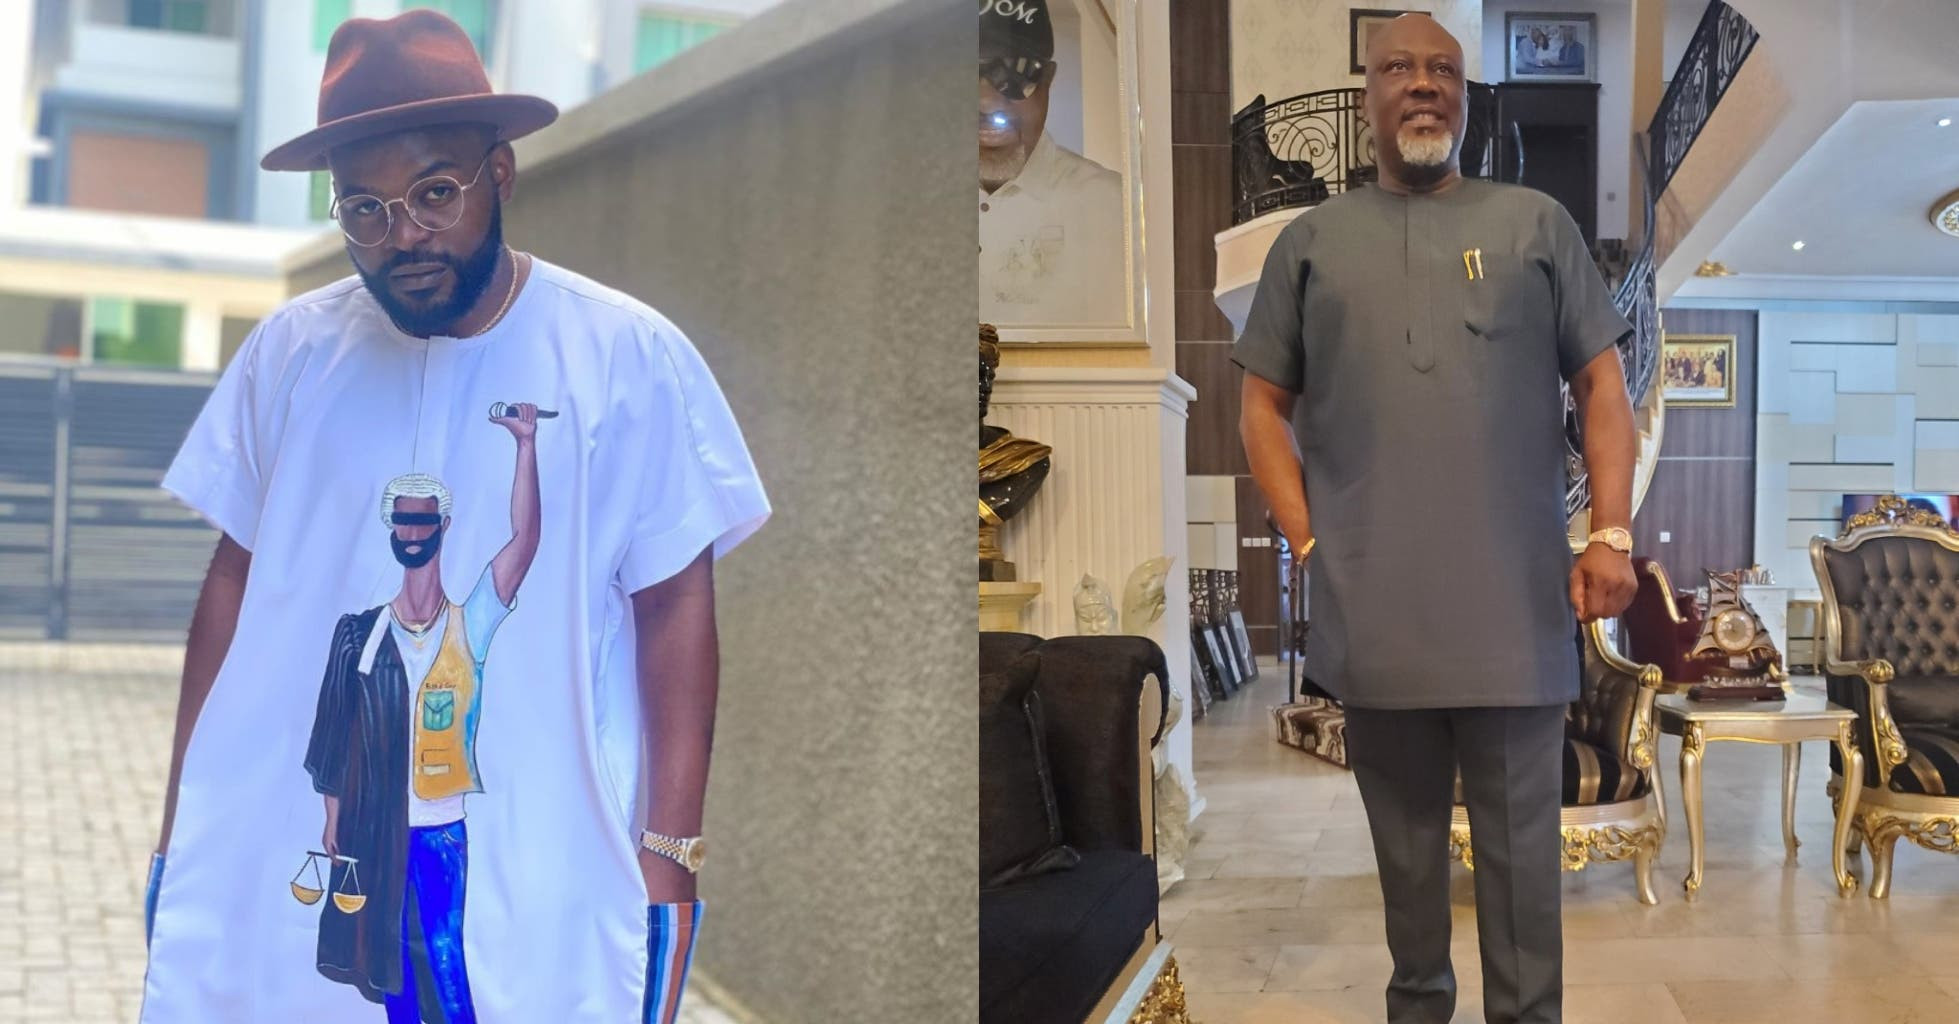 Falz slams Dino Melaye over solidarity with #EndSARS protesters - 'We go soon face una matter'